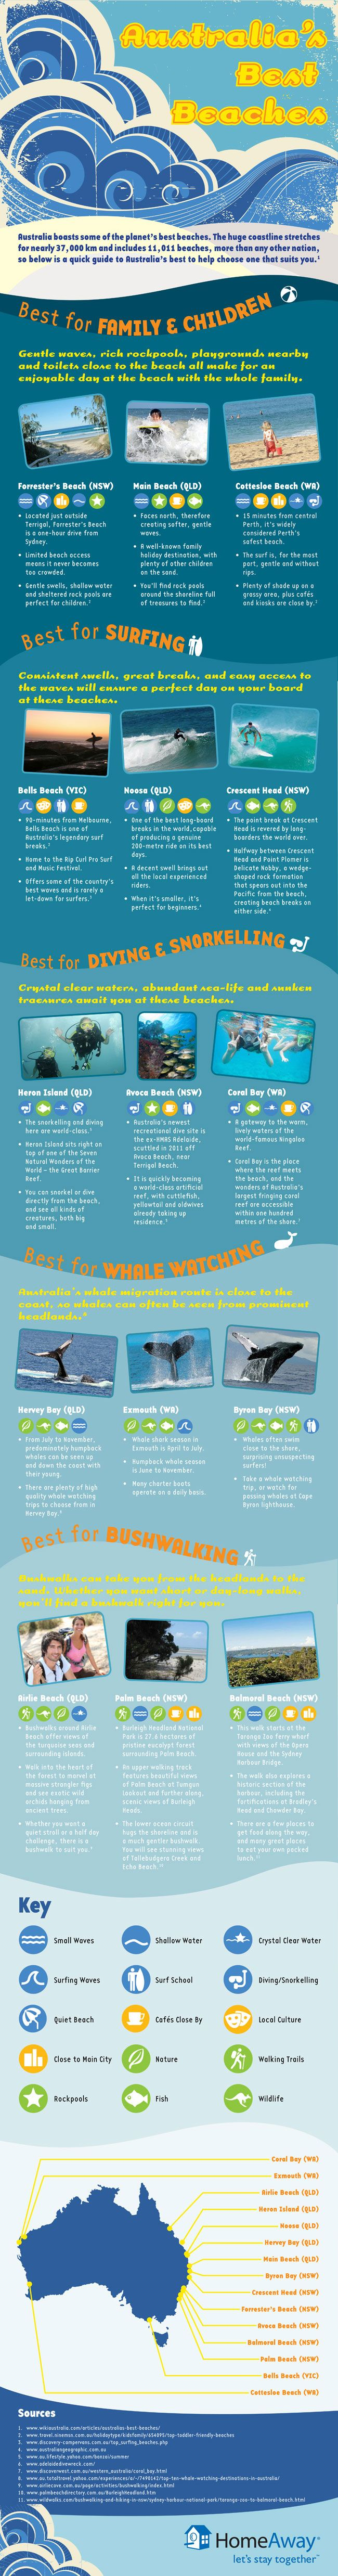 Australia's Best Beaches [Infographic] Best Surfing, Best Diving & Snorkeling, Best Whale Watching, Best Bushwalking & Best Beaches for Families and Kids  ... and if you need a rental car to get you to these beaches.. check out www.car-booker.com